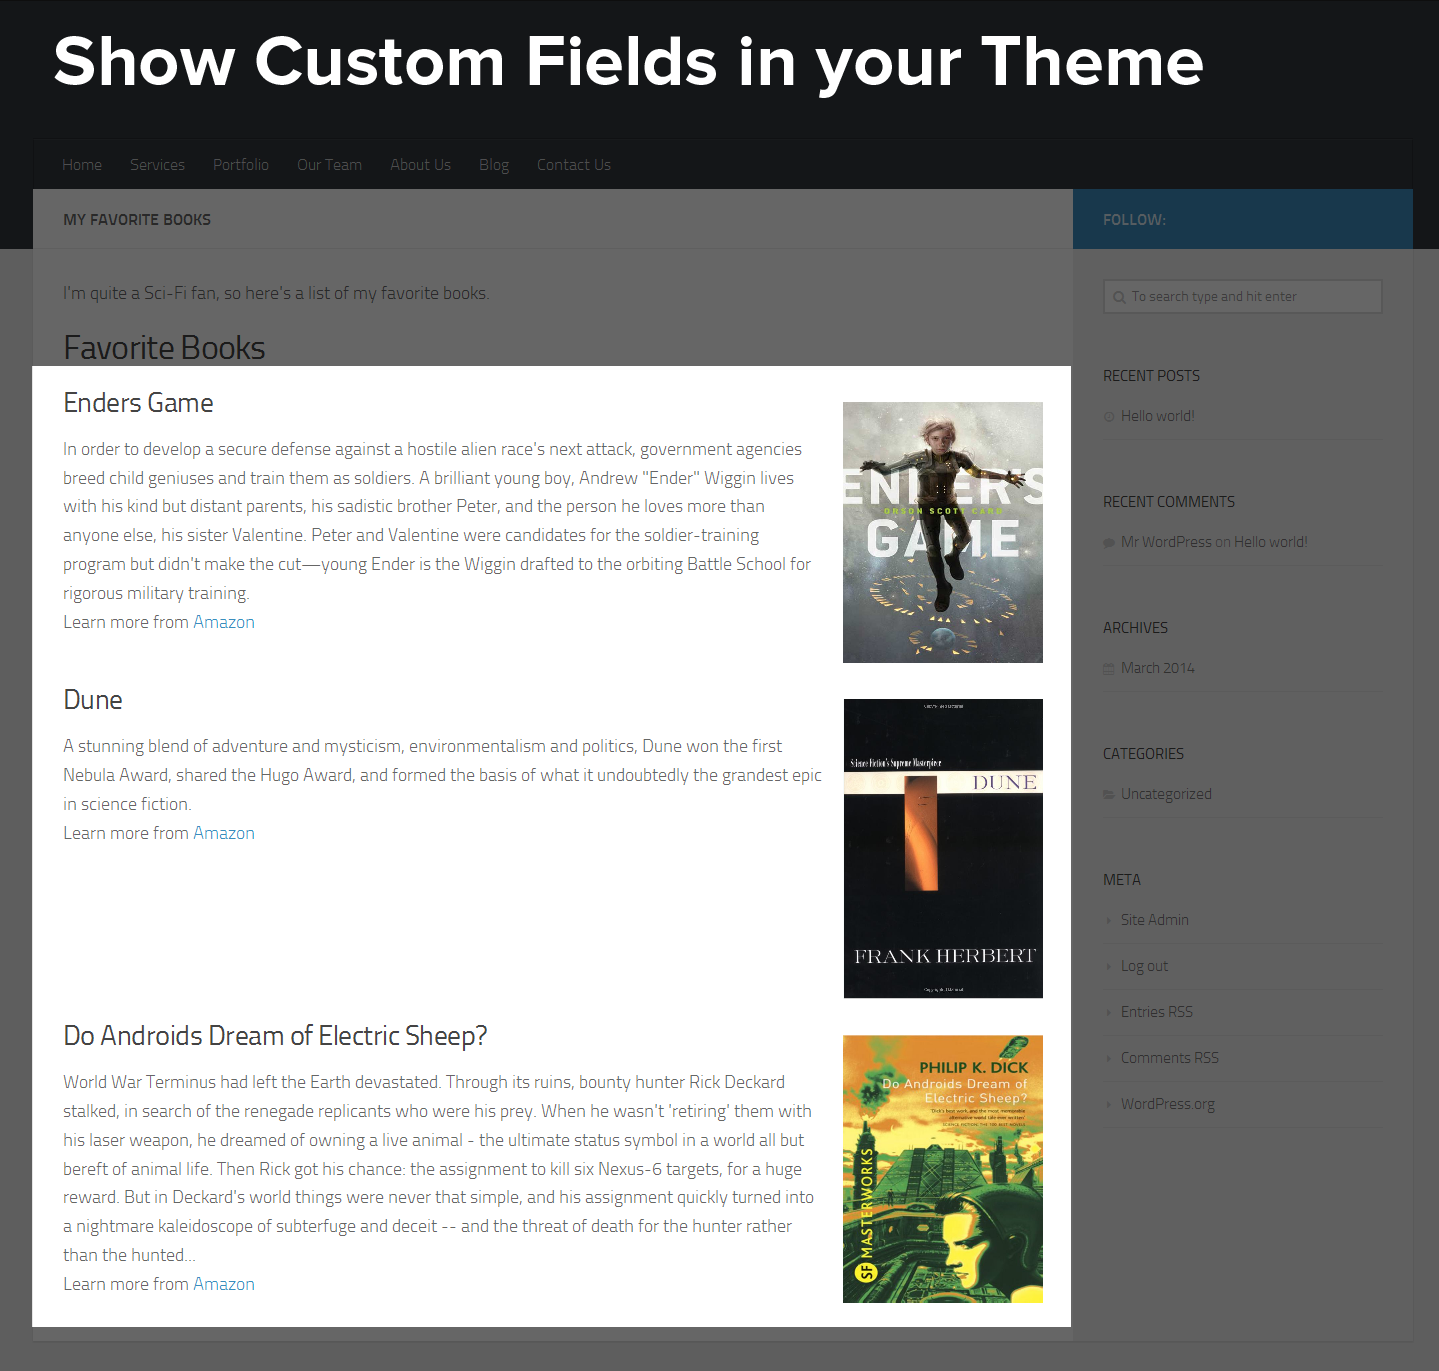 Show Custom Fields in your Theme